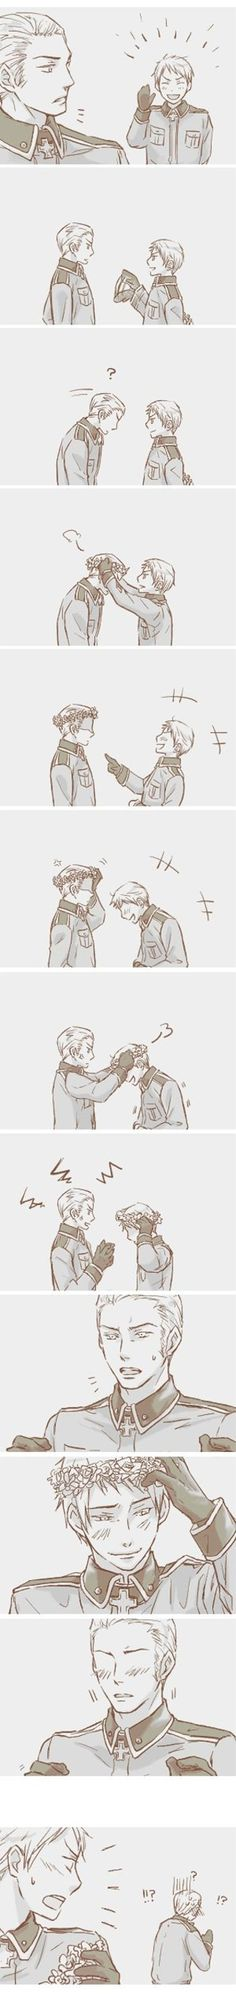 Germany knows what the fangirls know XD That Prussia is hella sexy